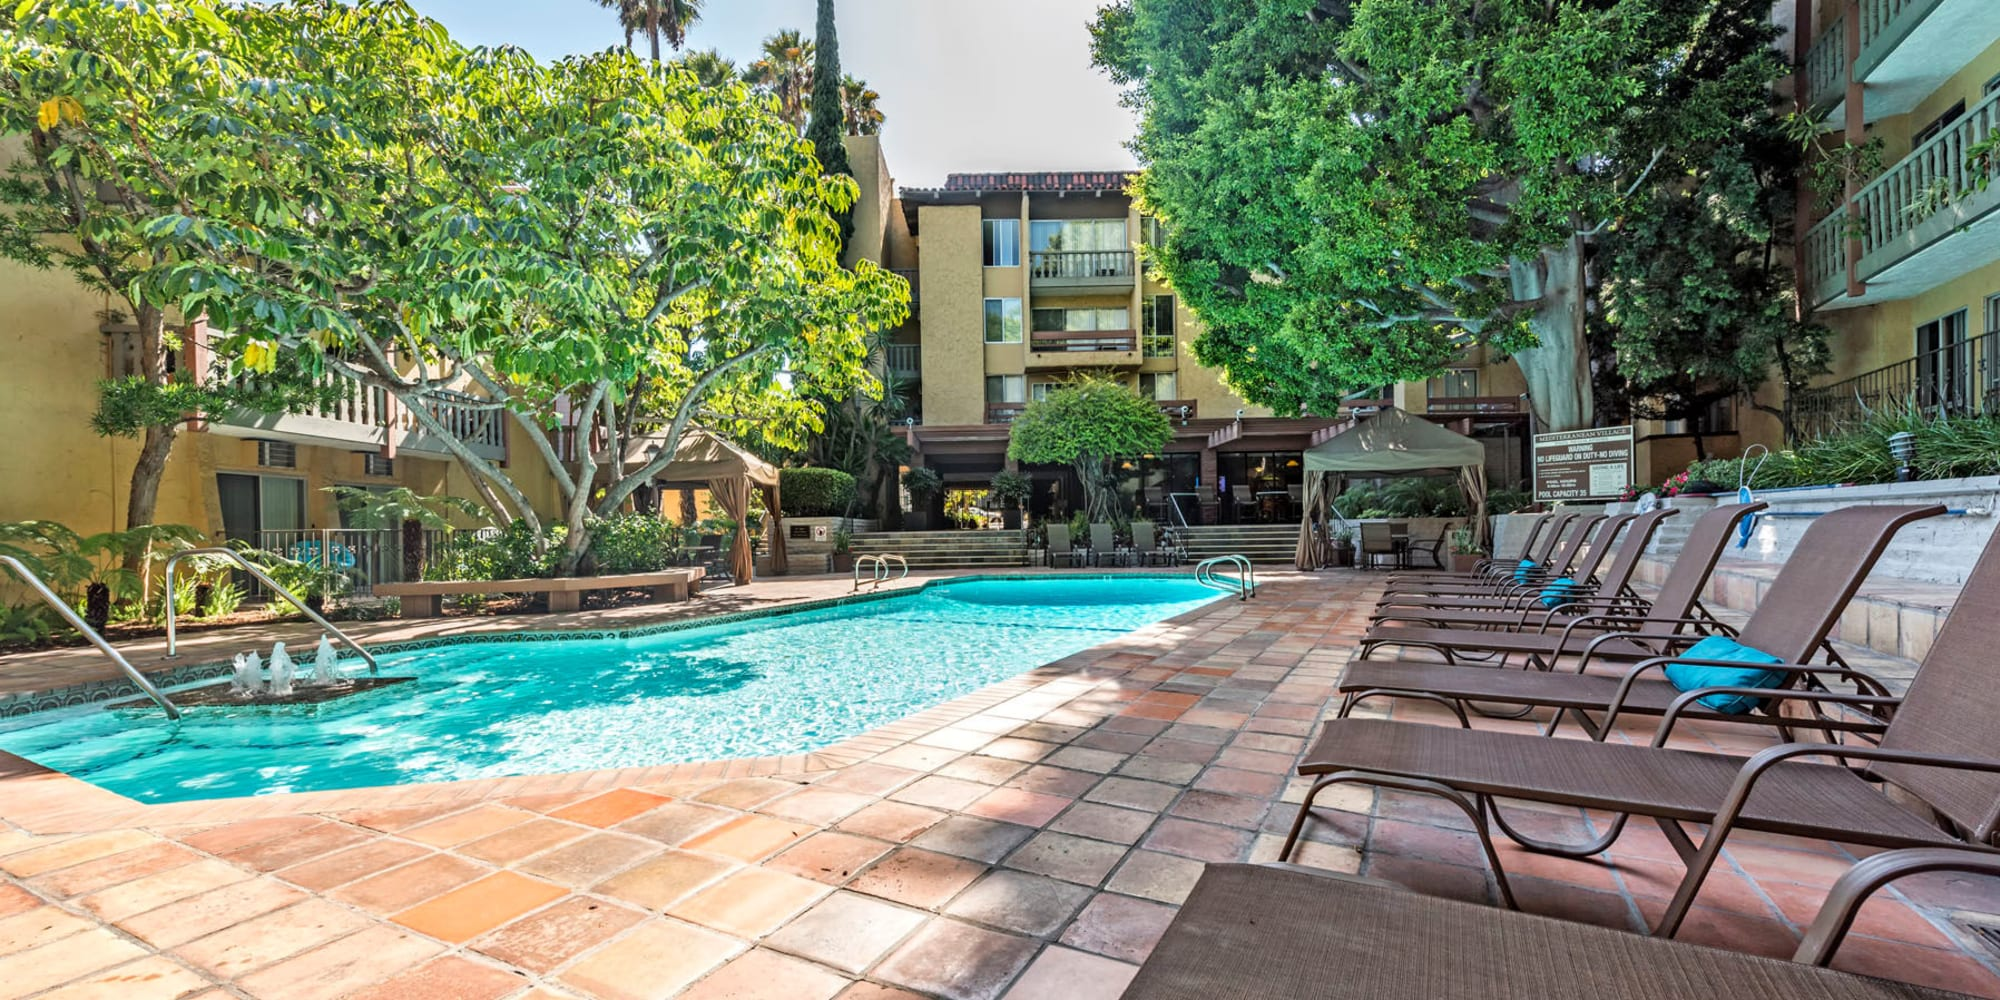 Chaise lounge chairs flanking the pool at Mediterranean Village in West Hollywood, California